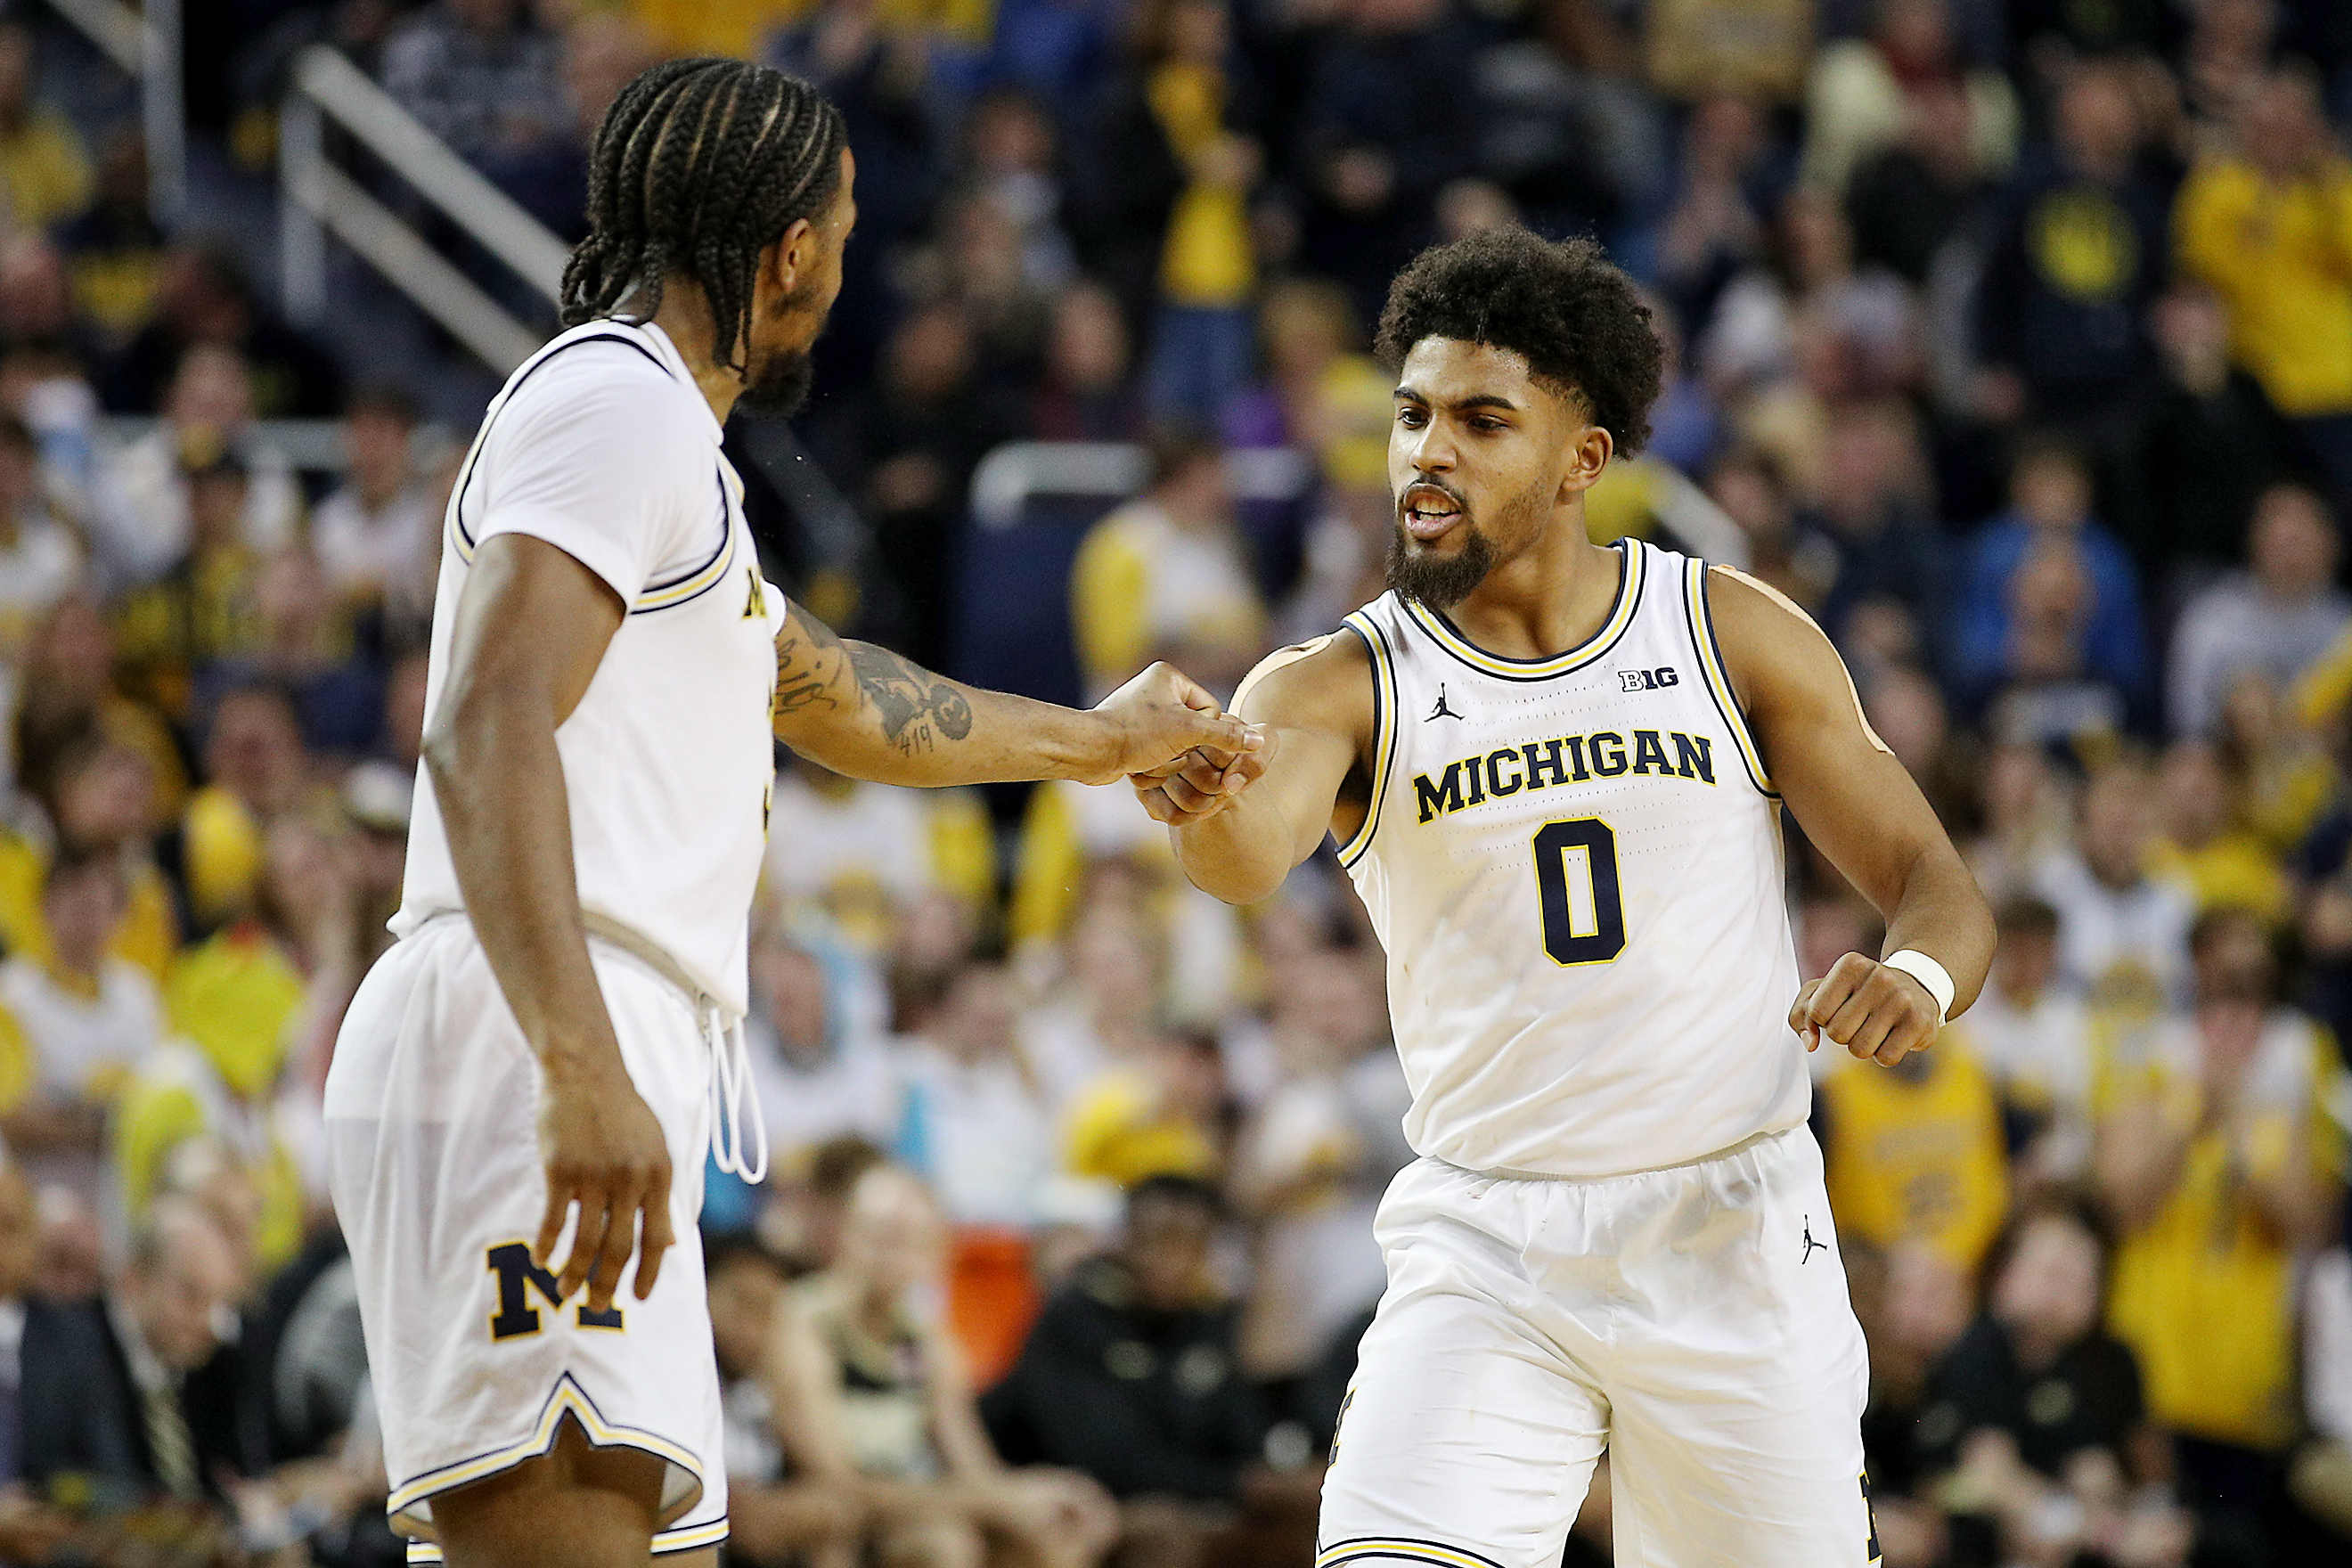 Michigan Basketball Enters Pivotal Stretch In Schedule